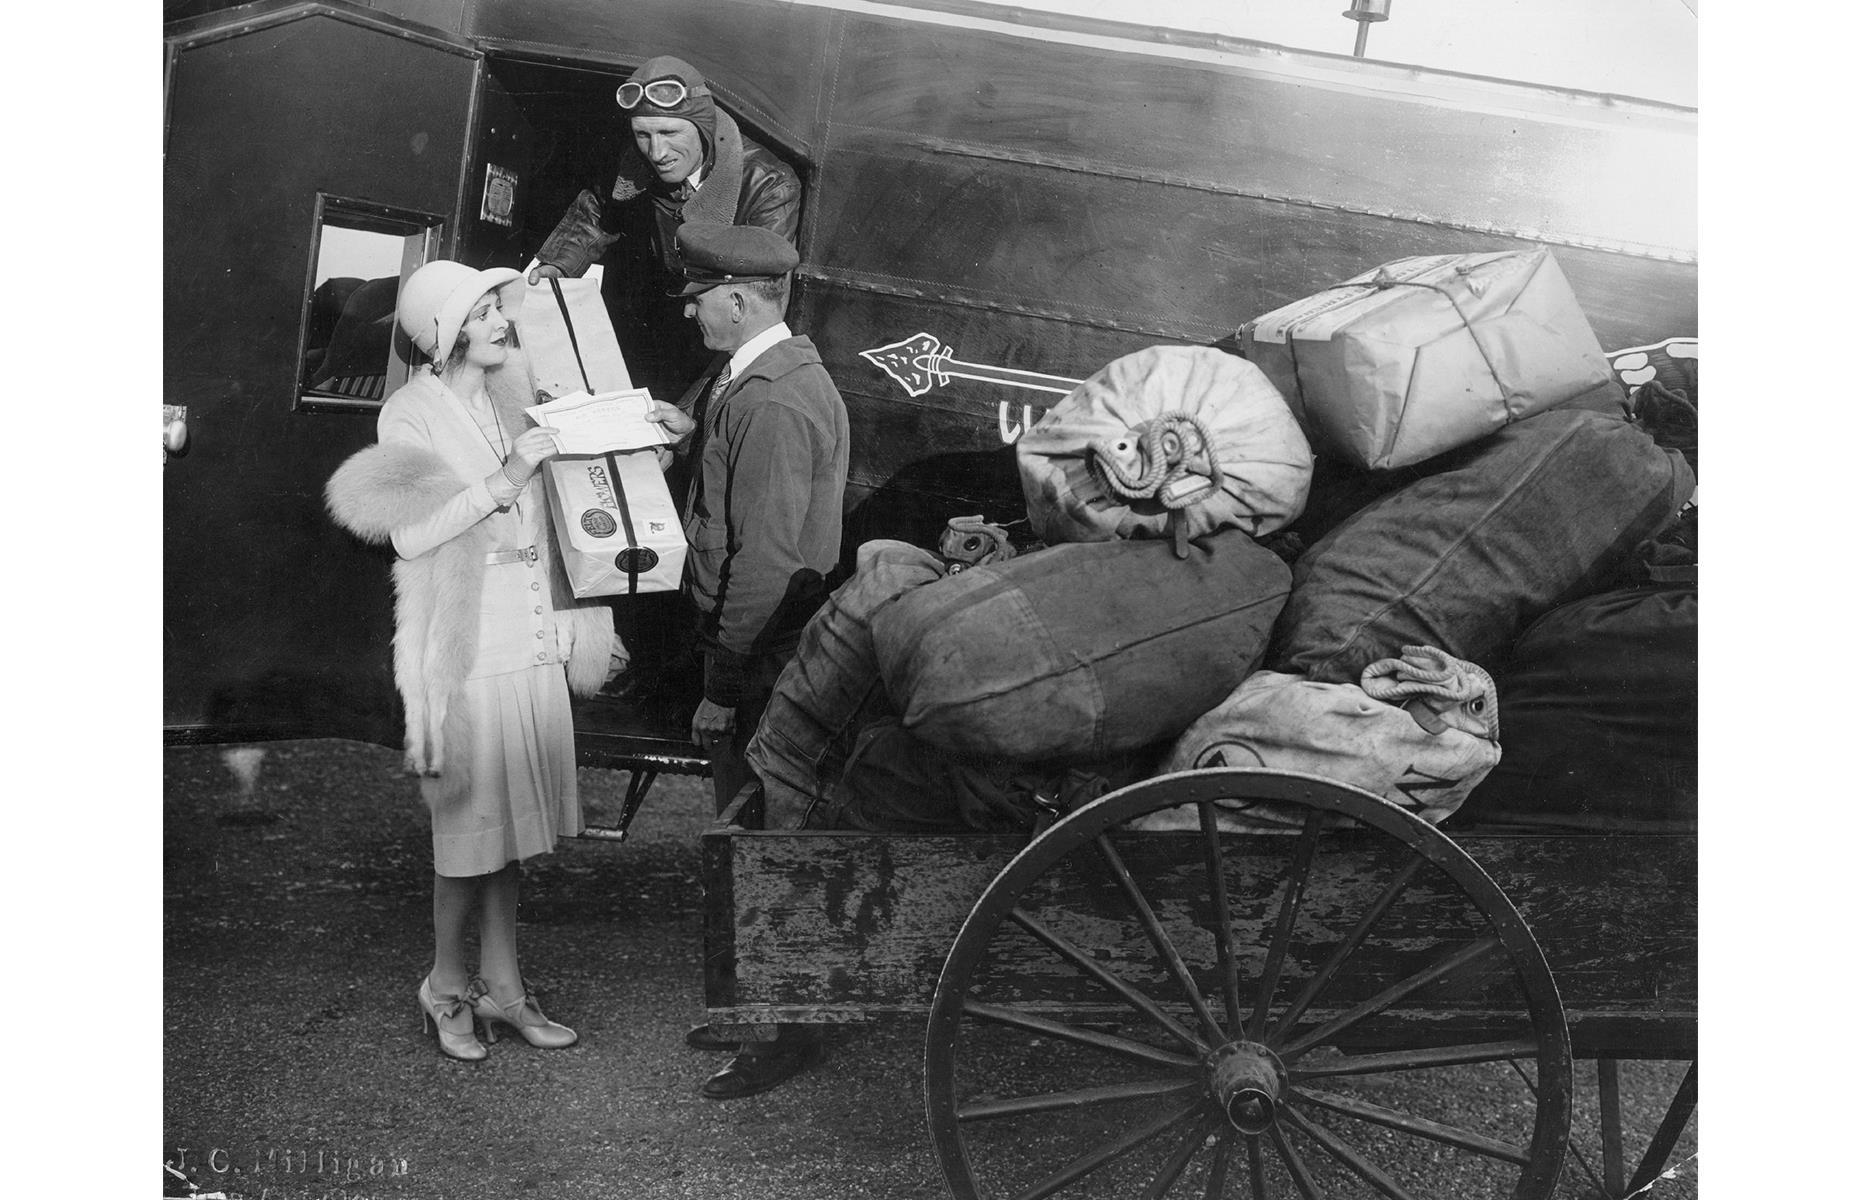 Slide 13 of 35: In the early days of the US air transport network, these new-fangled aircraft generally carried mail rather than passengers. This photo shows a woman handing her mail to aircraft crew employed by Western Air Express (later known as Western Airlines).